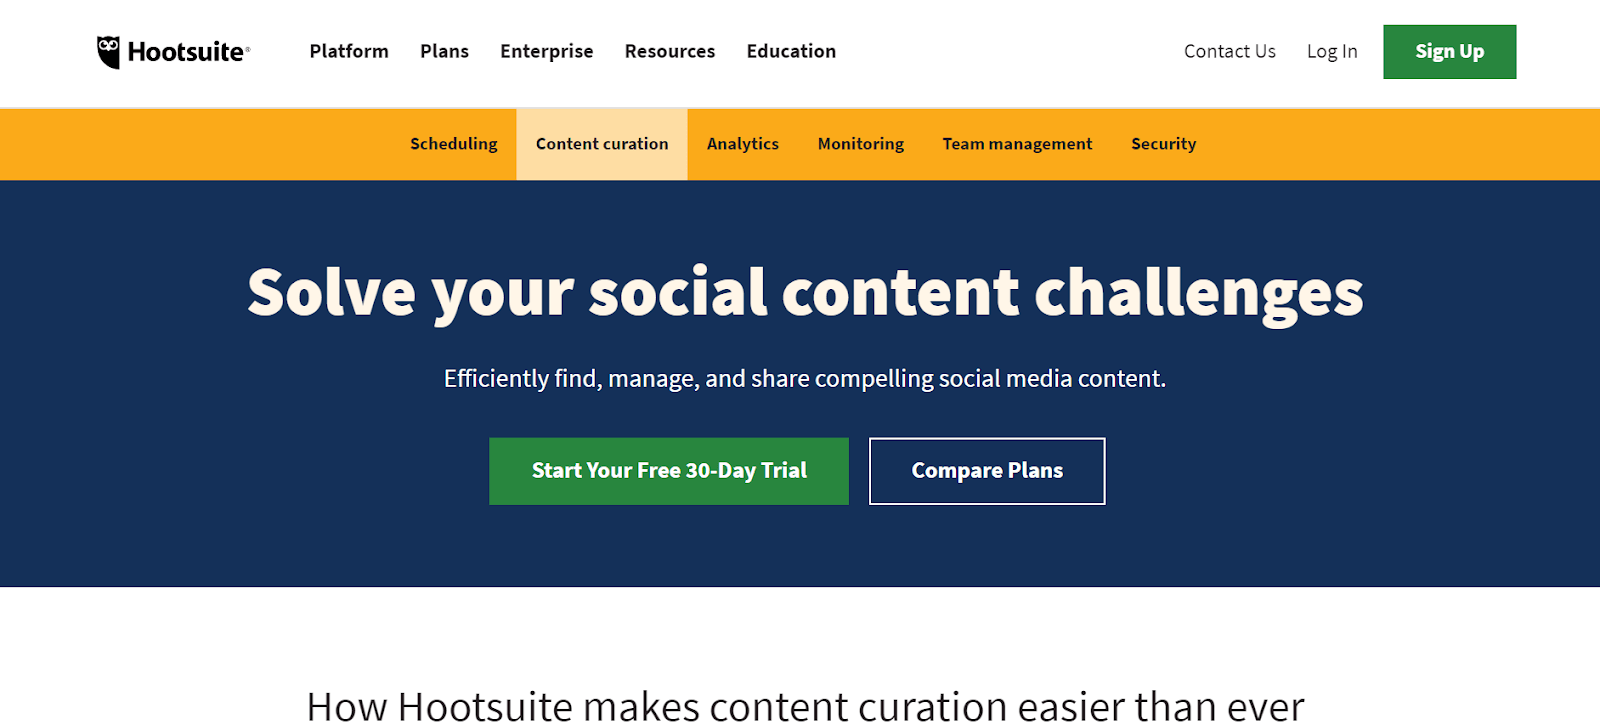 Hootsuite BuzzSumo Alternatives